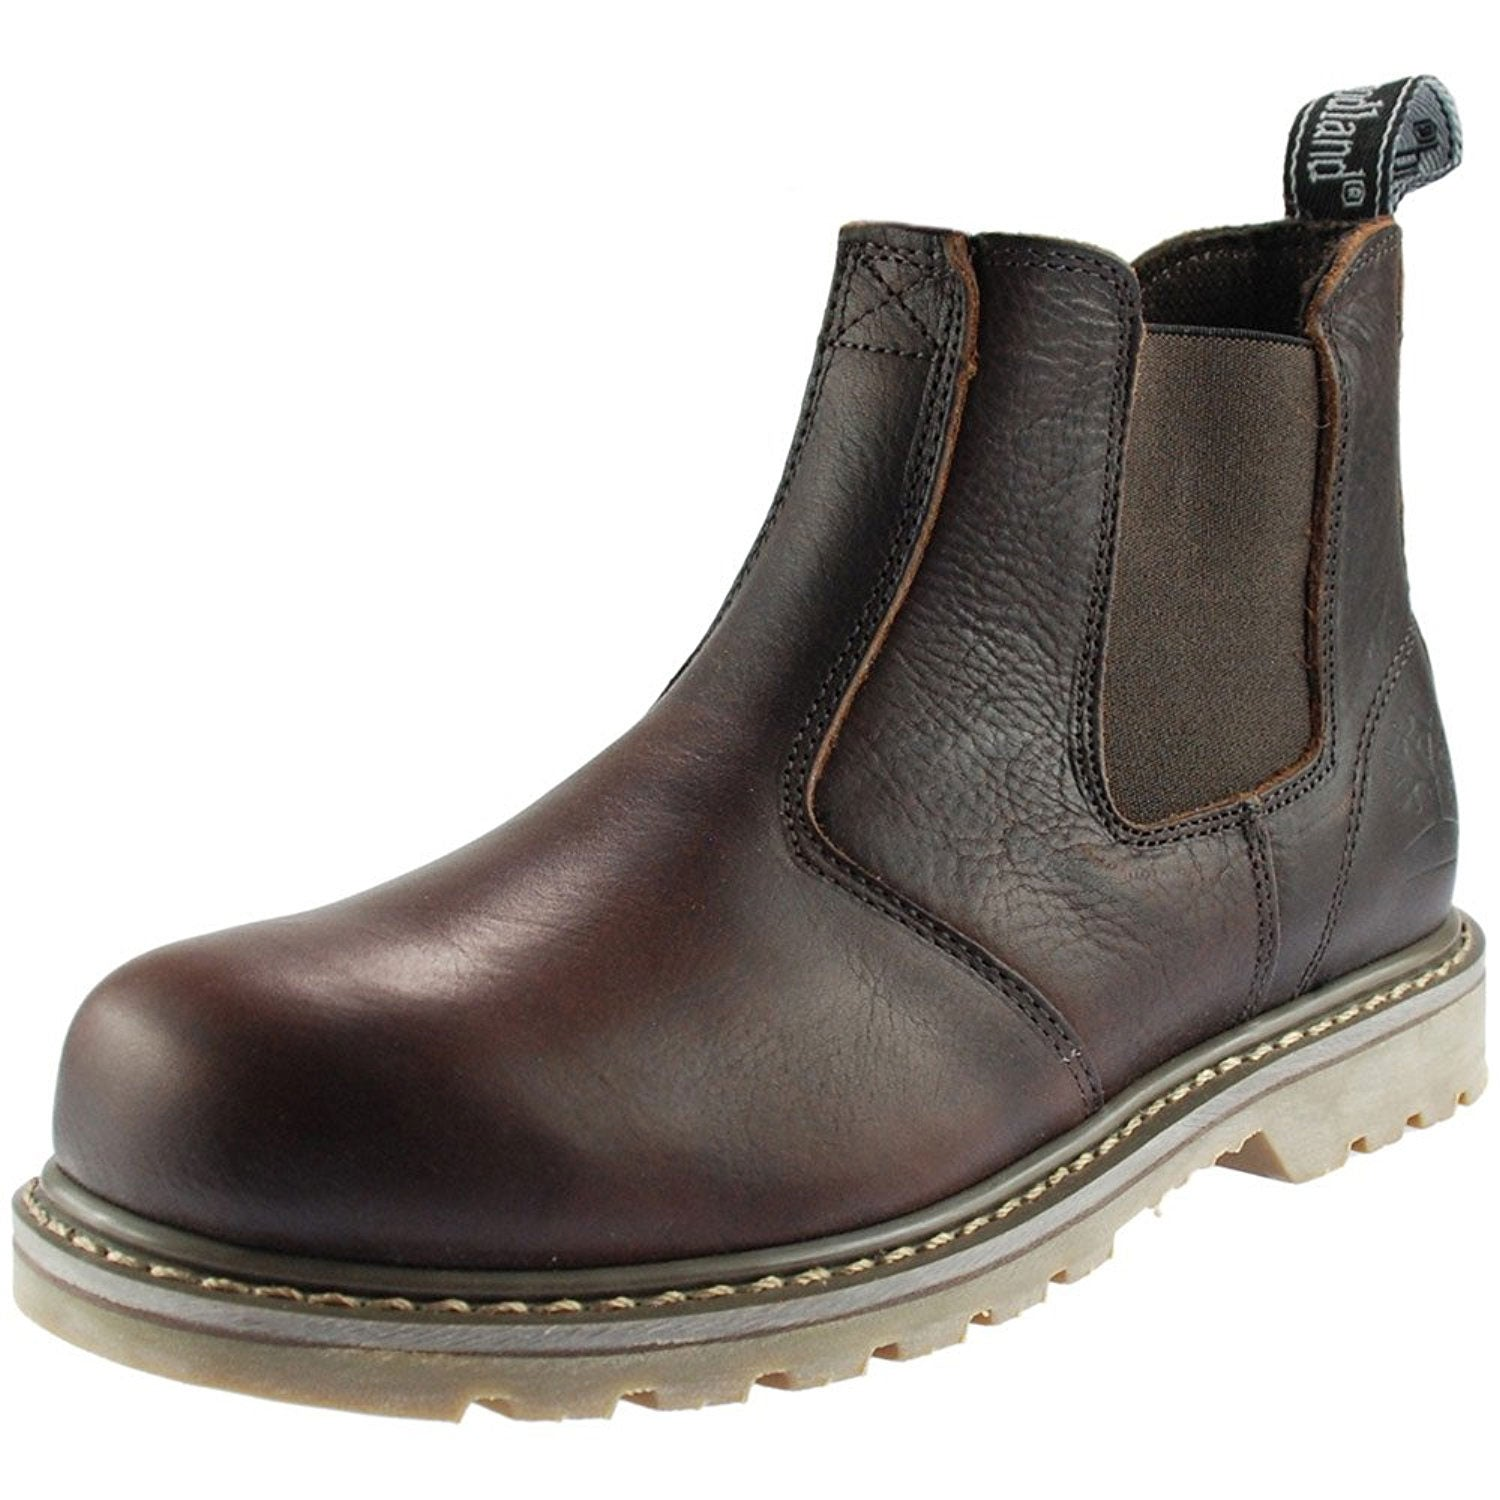 Woodland Leather Dealer Boot – Hollands Country Clothing